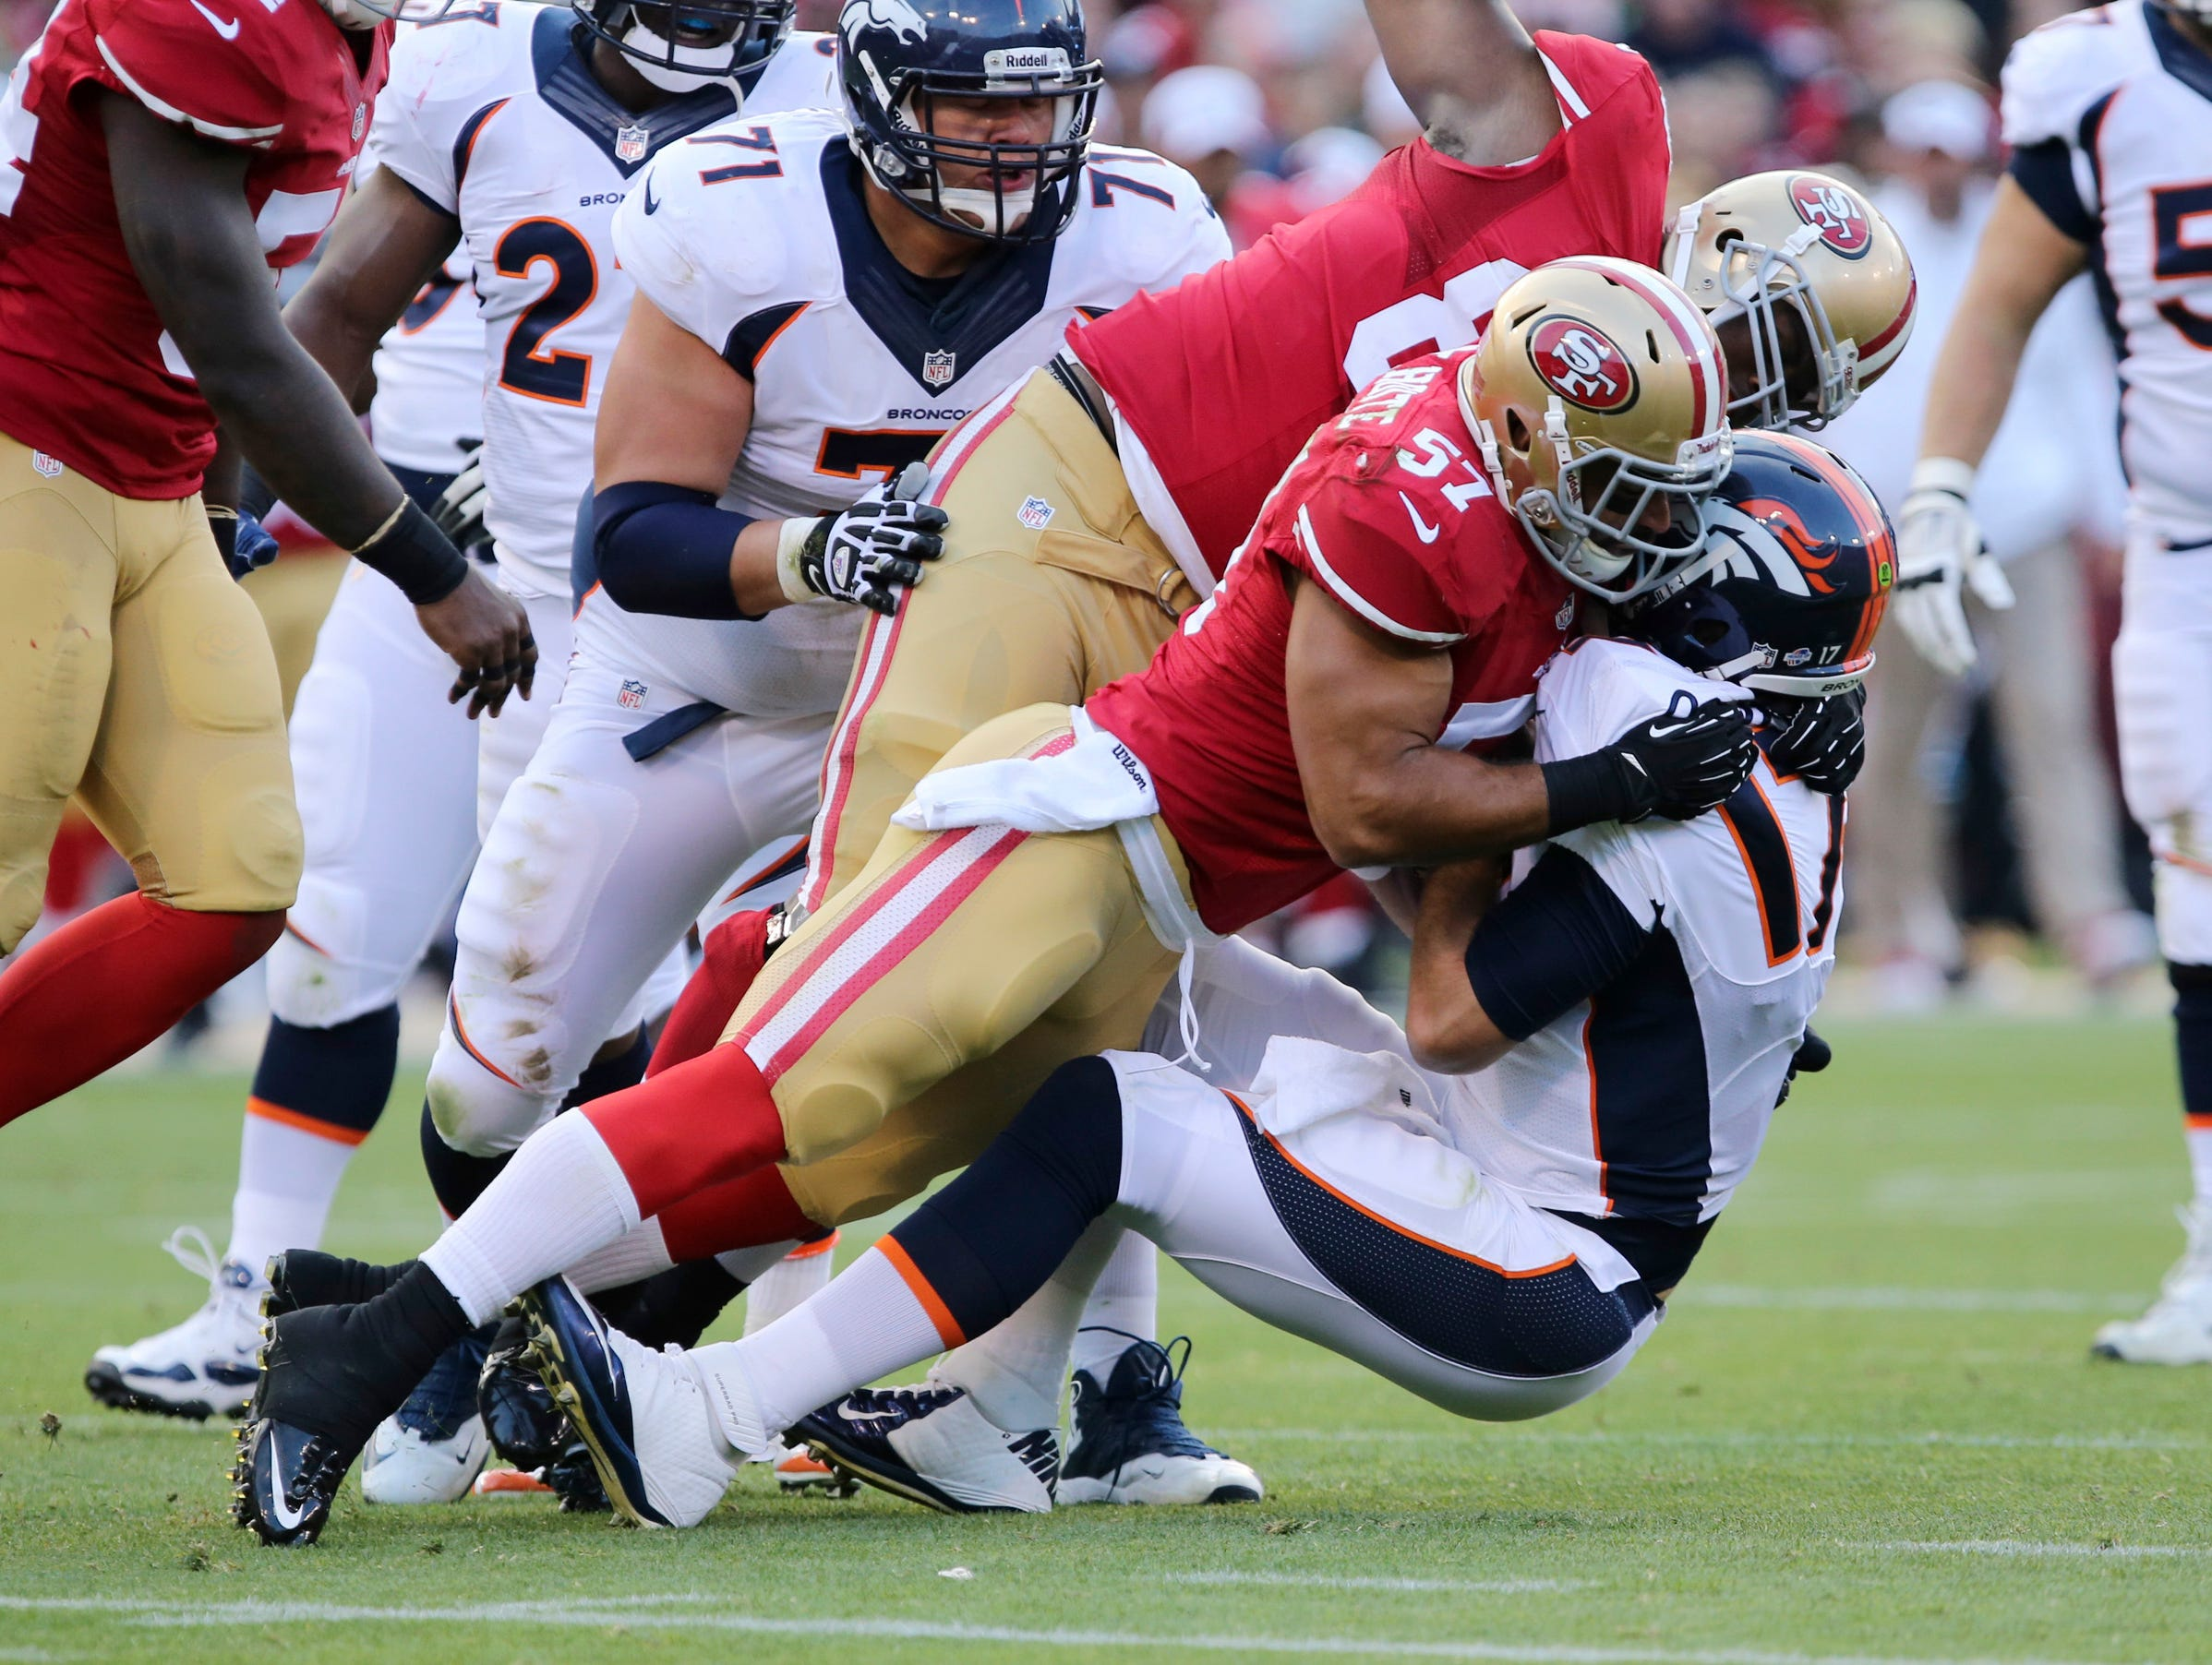 San Francisco 49ers linebacker Michael Wilhoite (57) and tight end Demarcus Dobbs (83) sack Denver Broncos quarterback Brock Osweiler (17) during the second quarter at Candlestick Park.